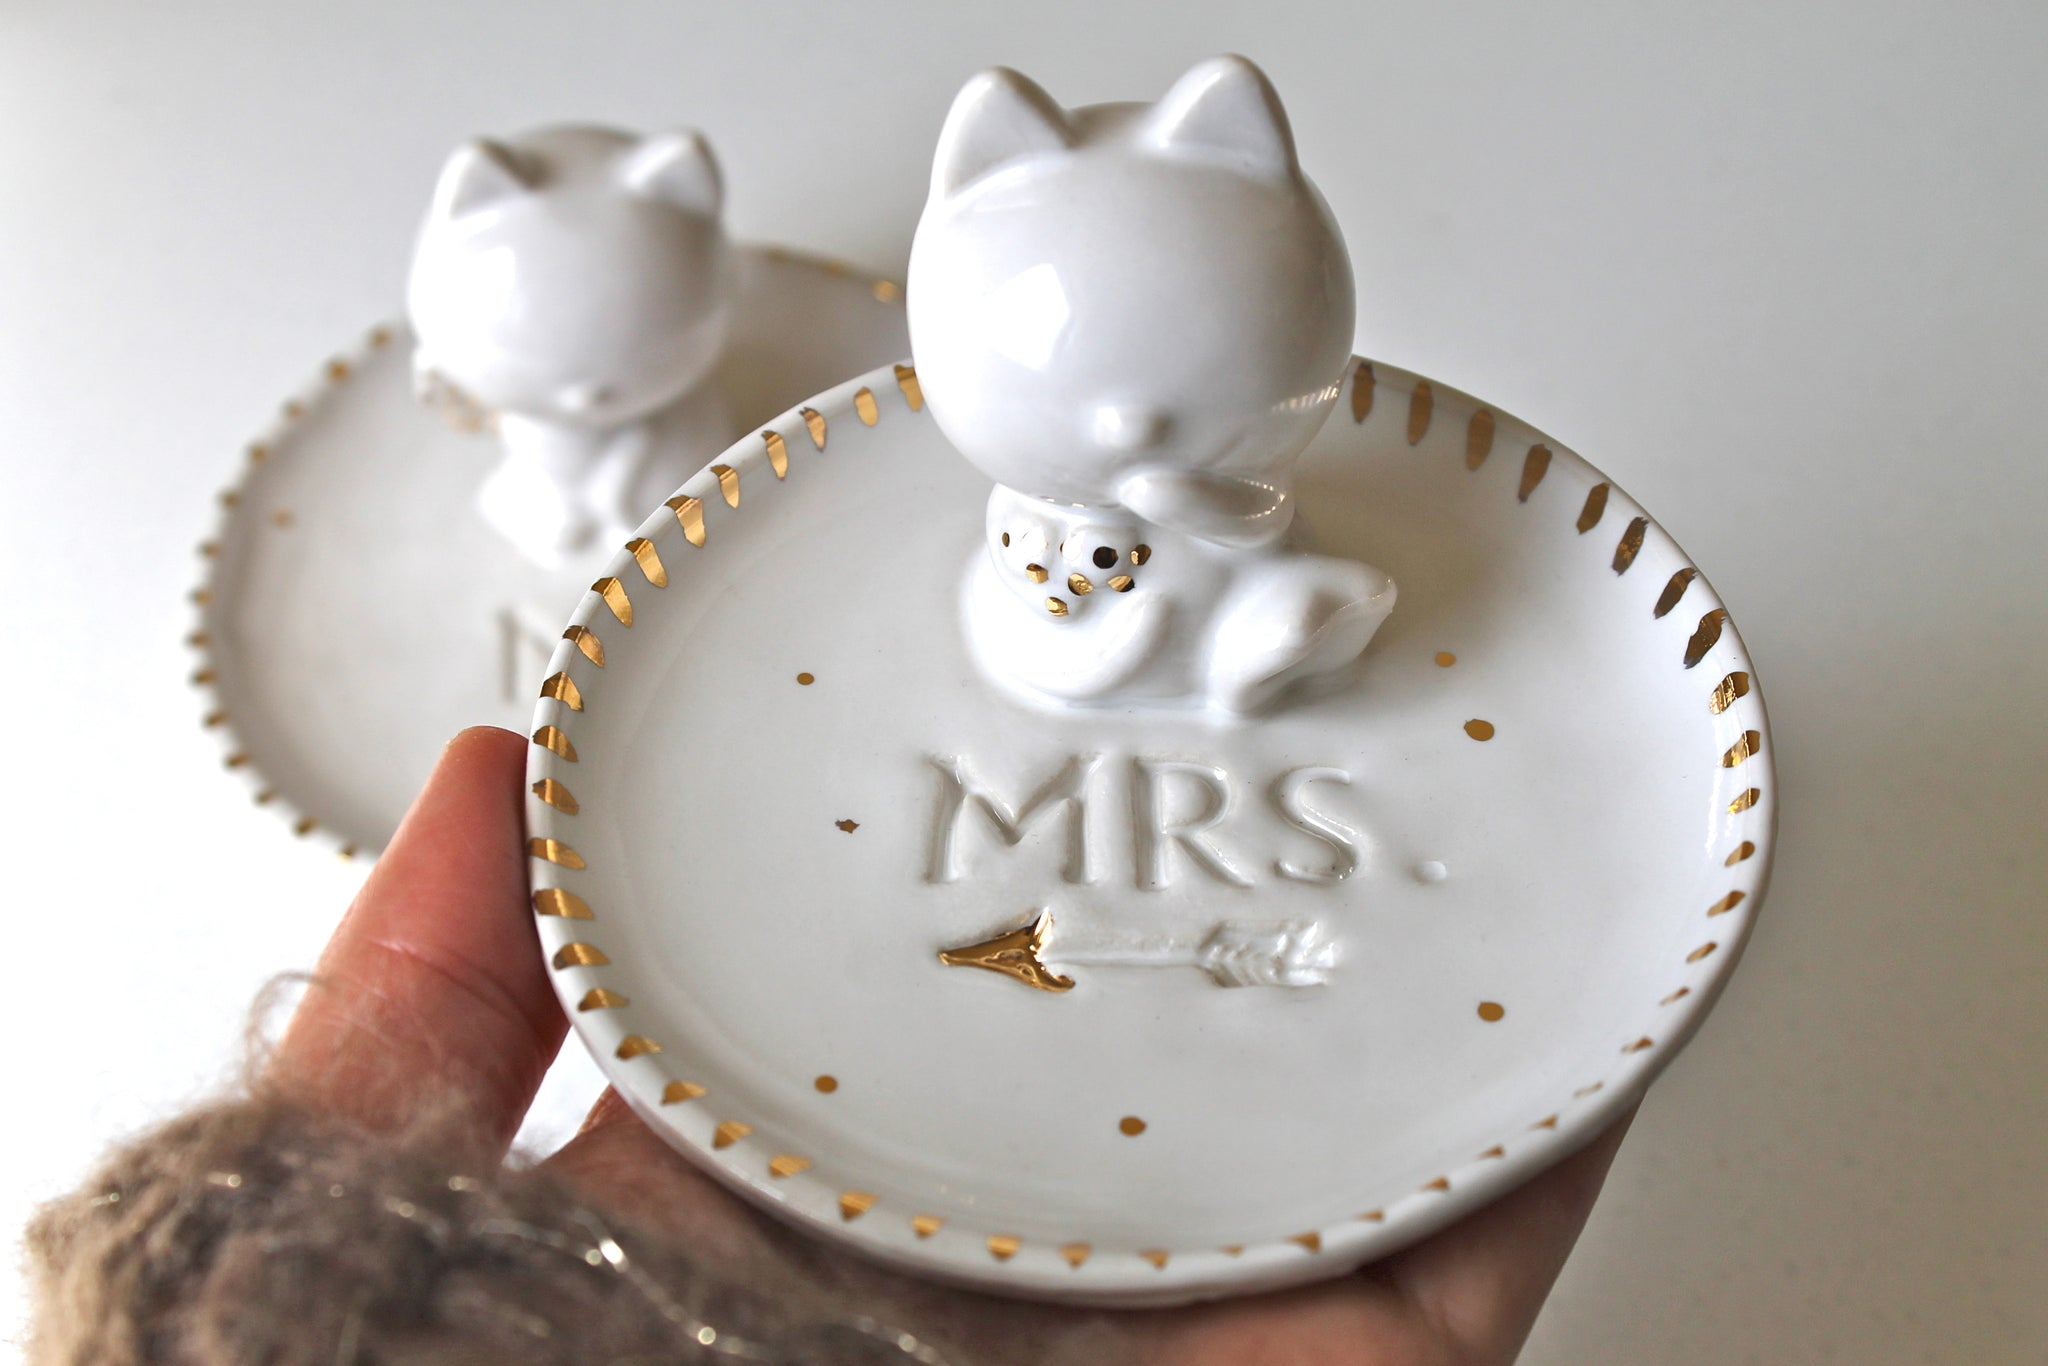 M. and Mrs Cat ring dish with 22k gold